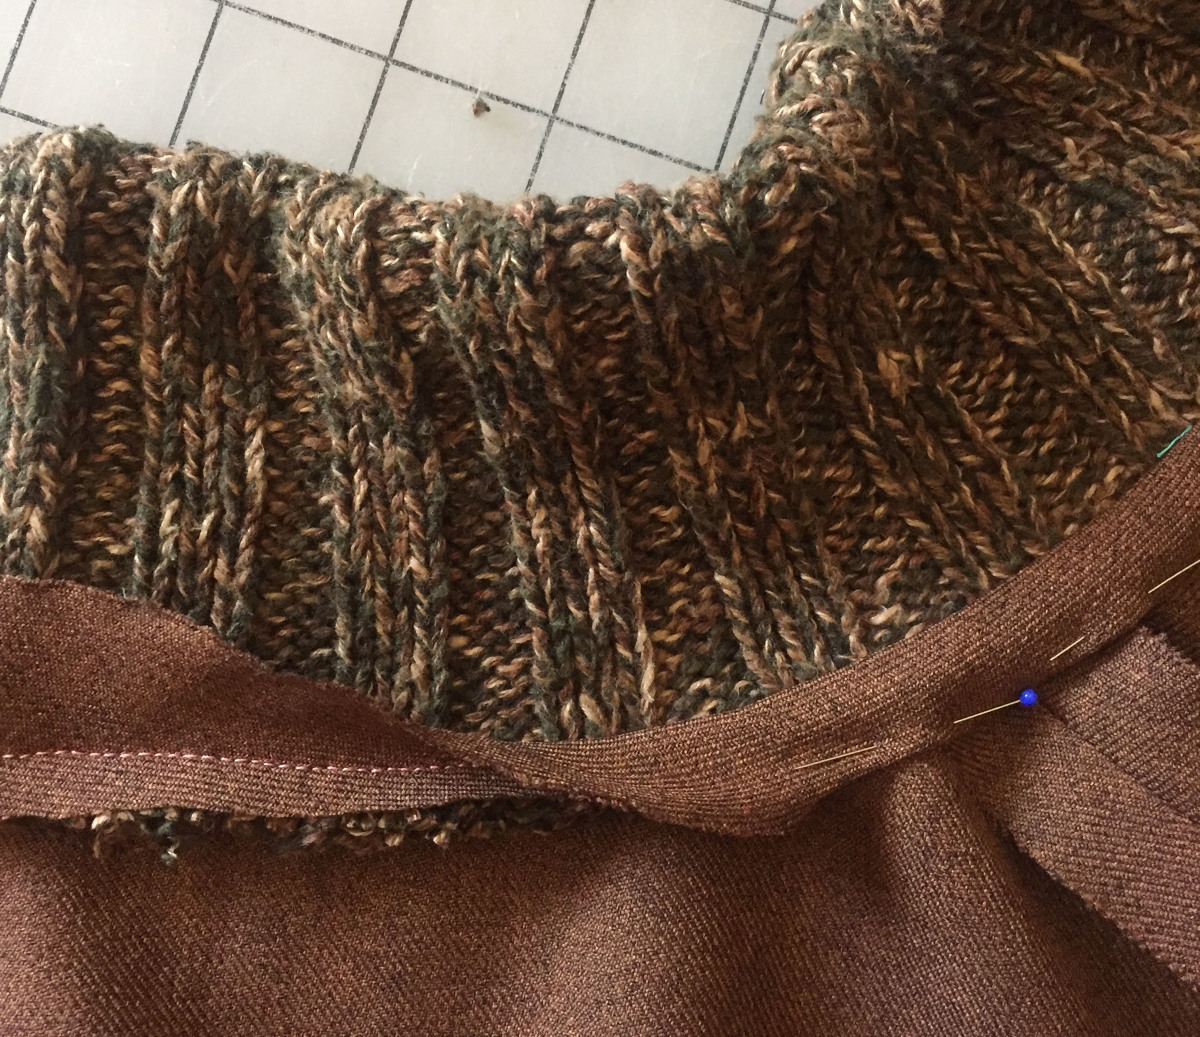 Wrap the bias strip over the trimmed seam allowances